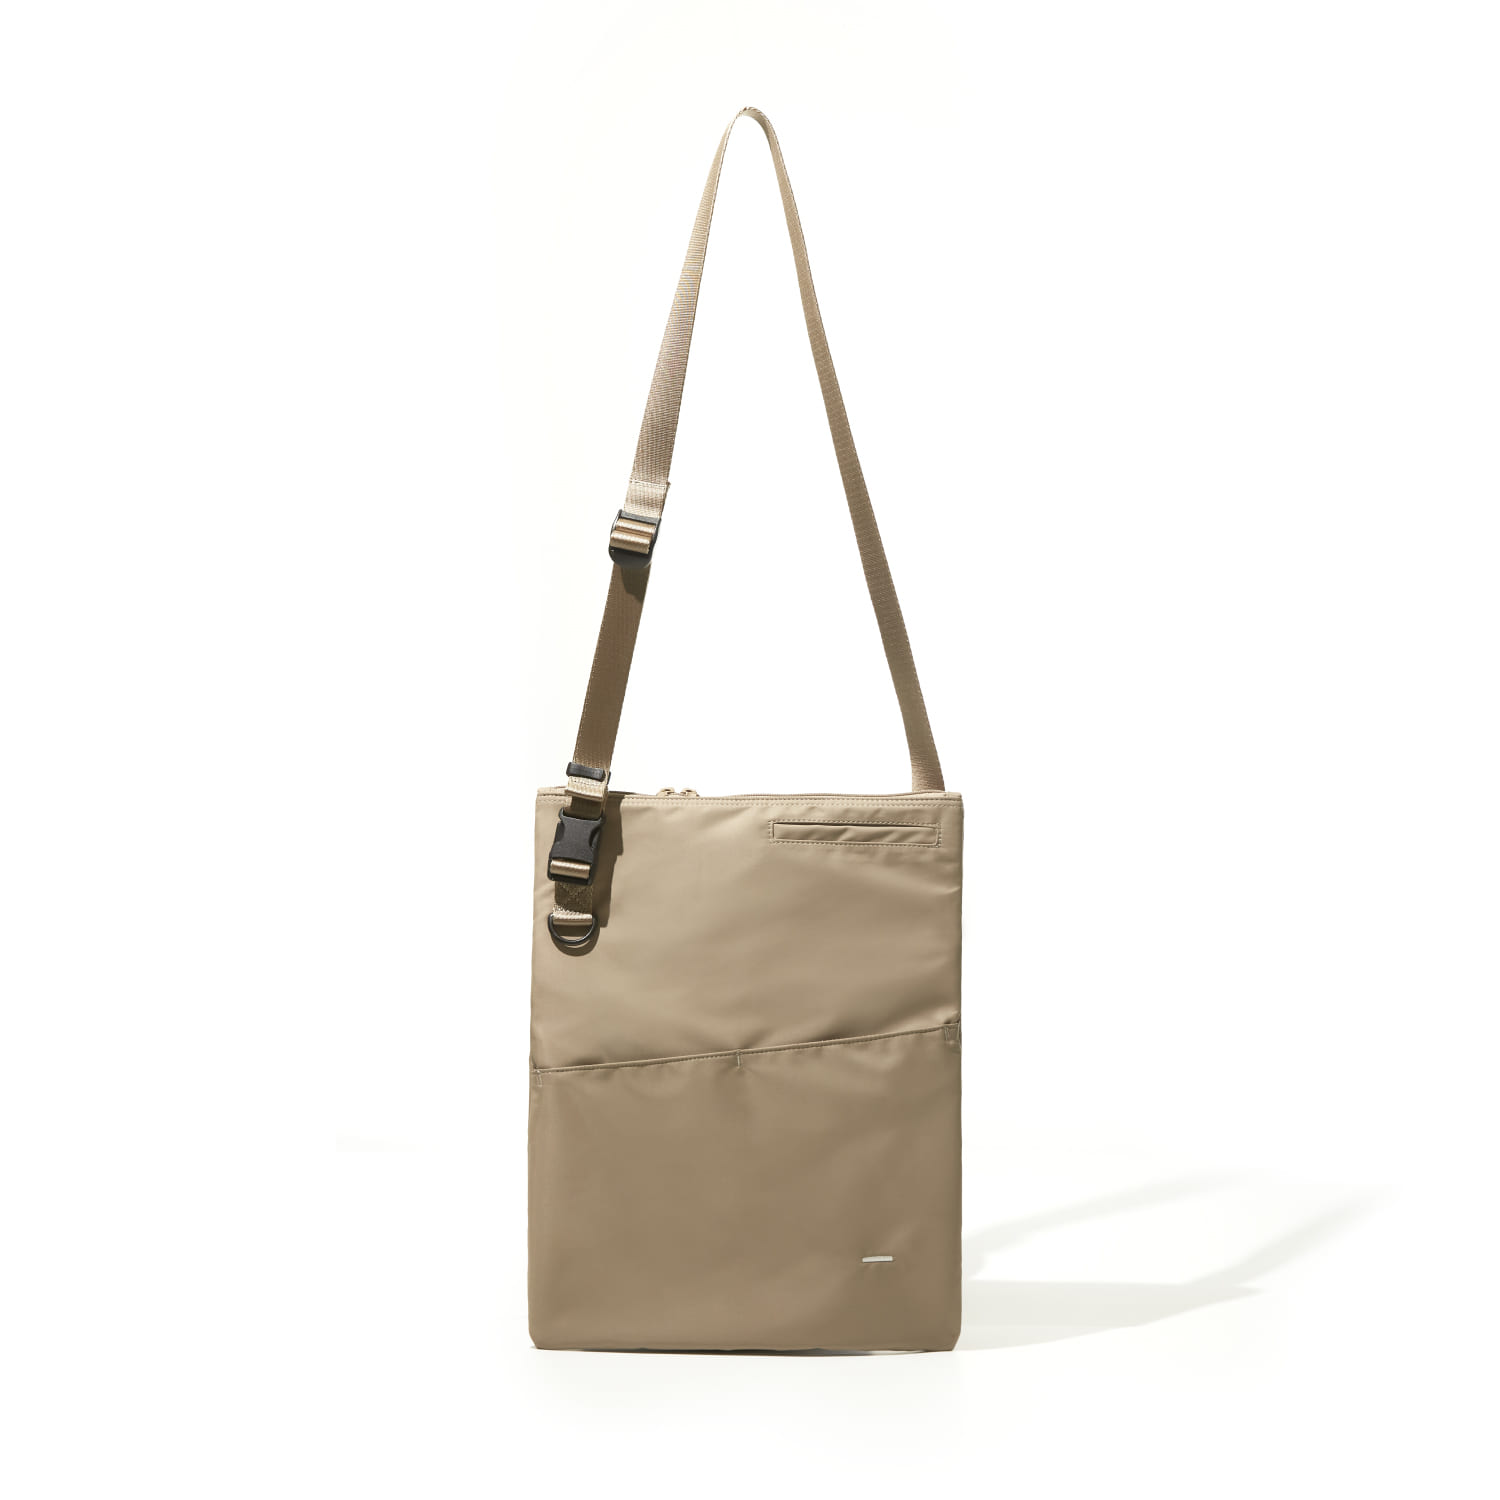 WORTHWHILE MOVEMENT월스와일 무브먼트 FOLDABLE FLAT BAG (BEIGE)